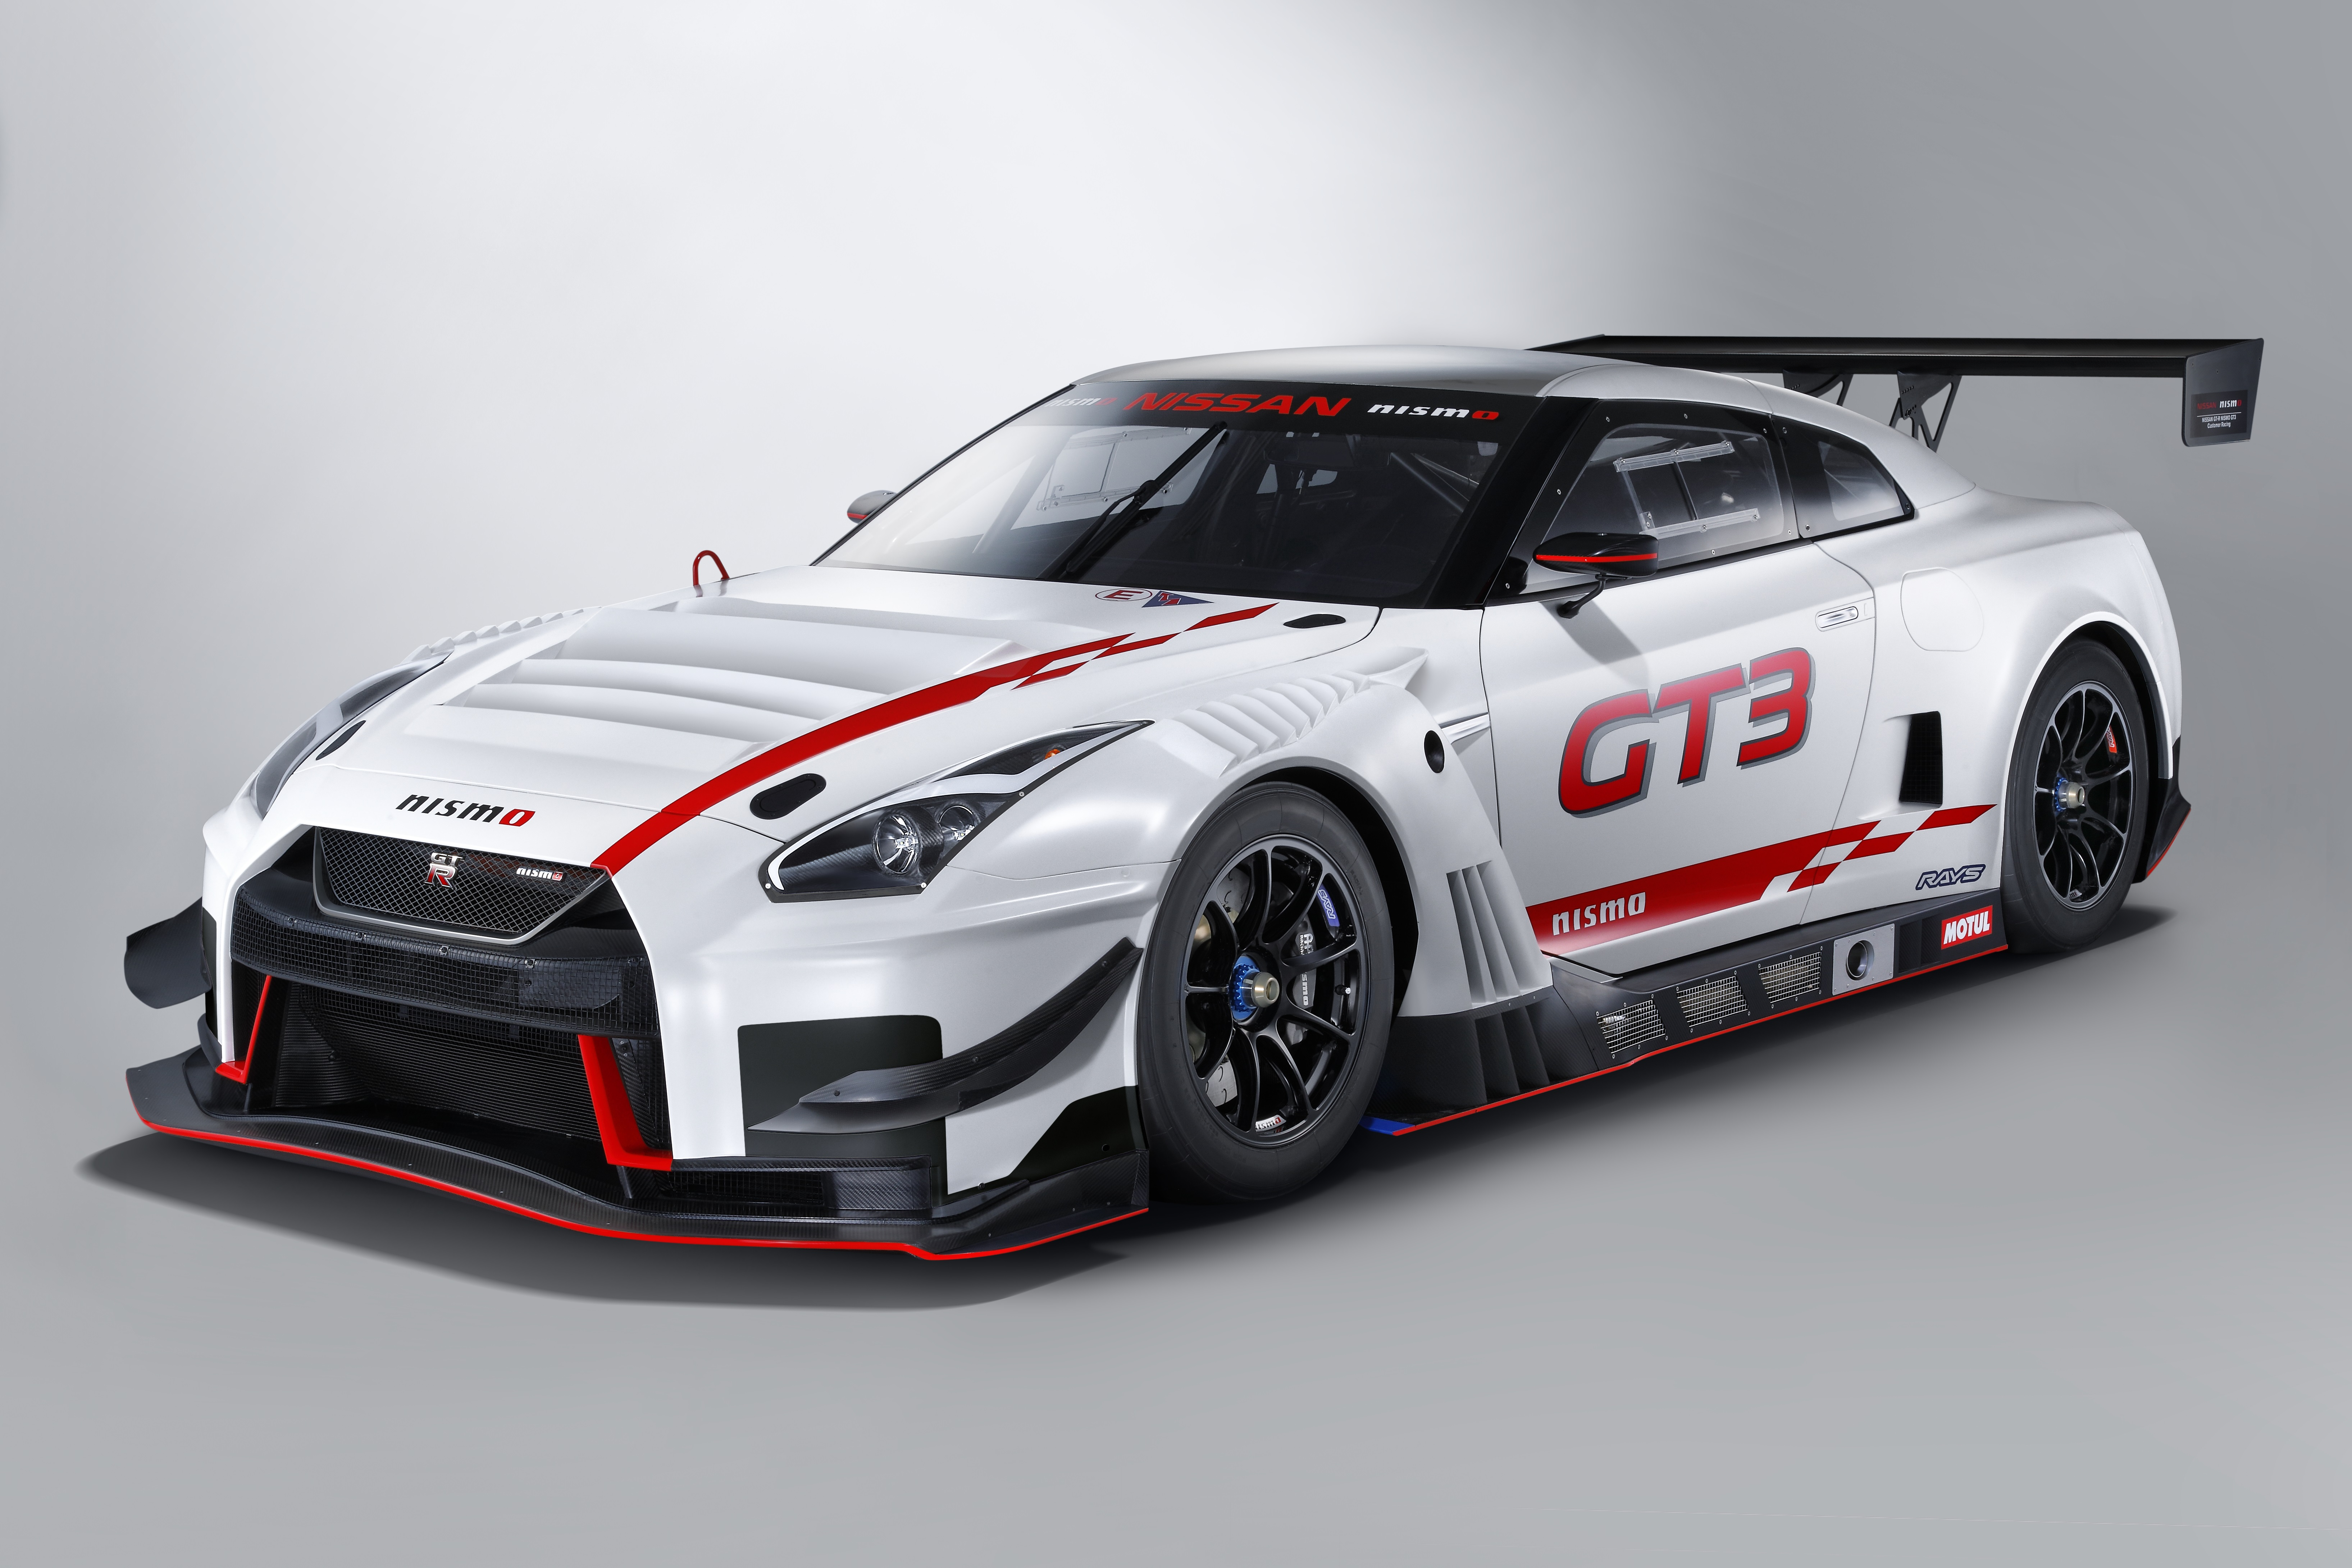 2018 Nissan Gt R Nismo Gt3 To Go On Sale Wheels Ca